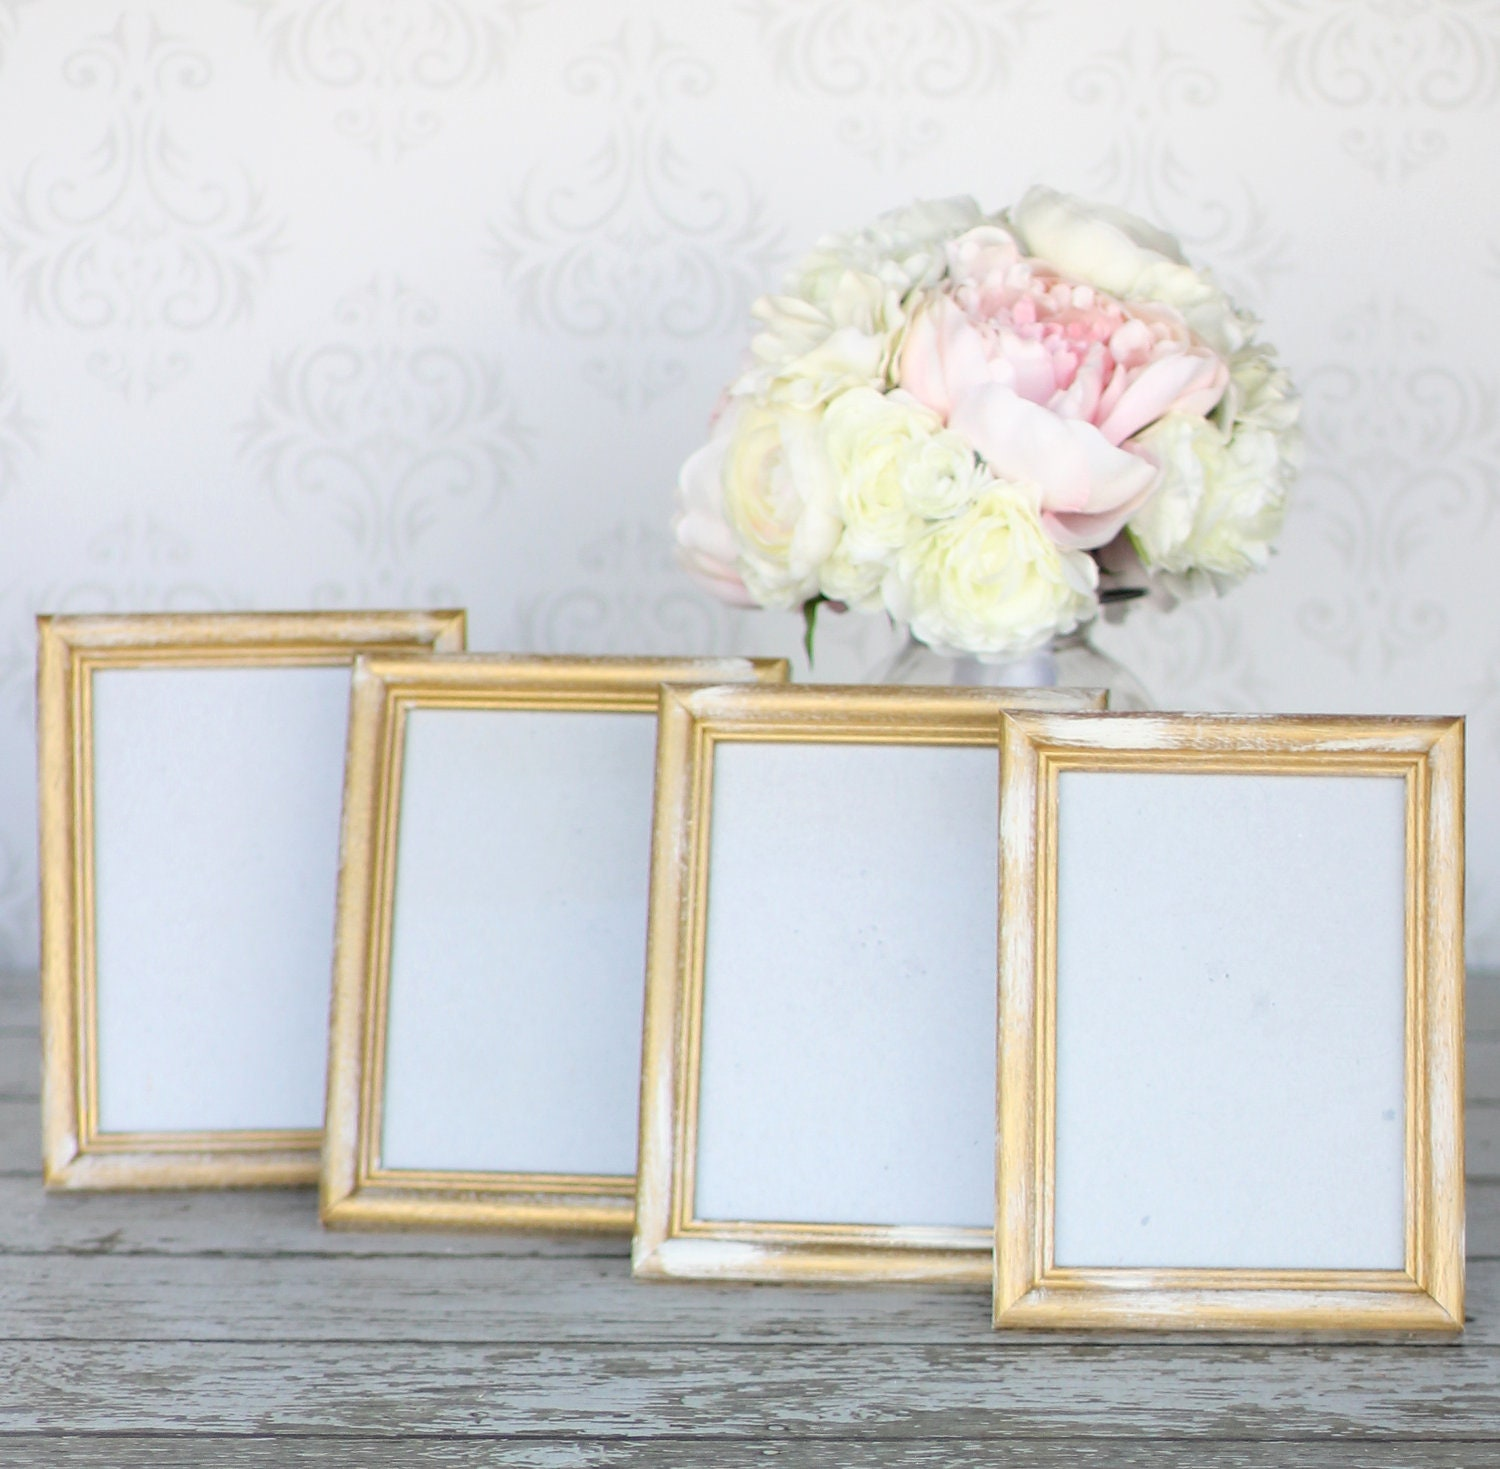 Rustic Gold Wedding Frames 5x7 Shabby Decor SET of 4 - braggingbags